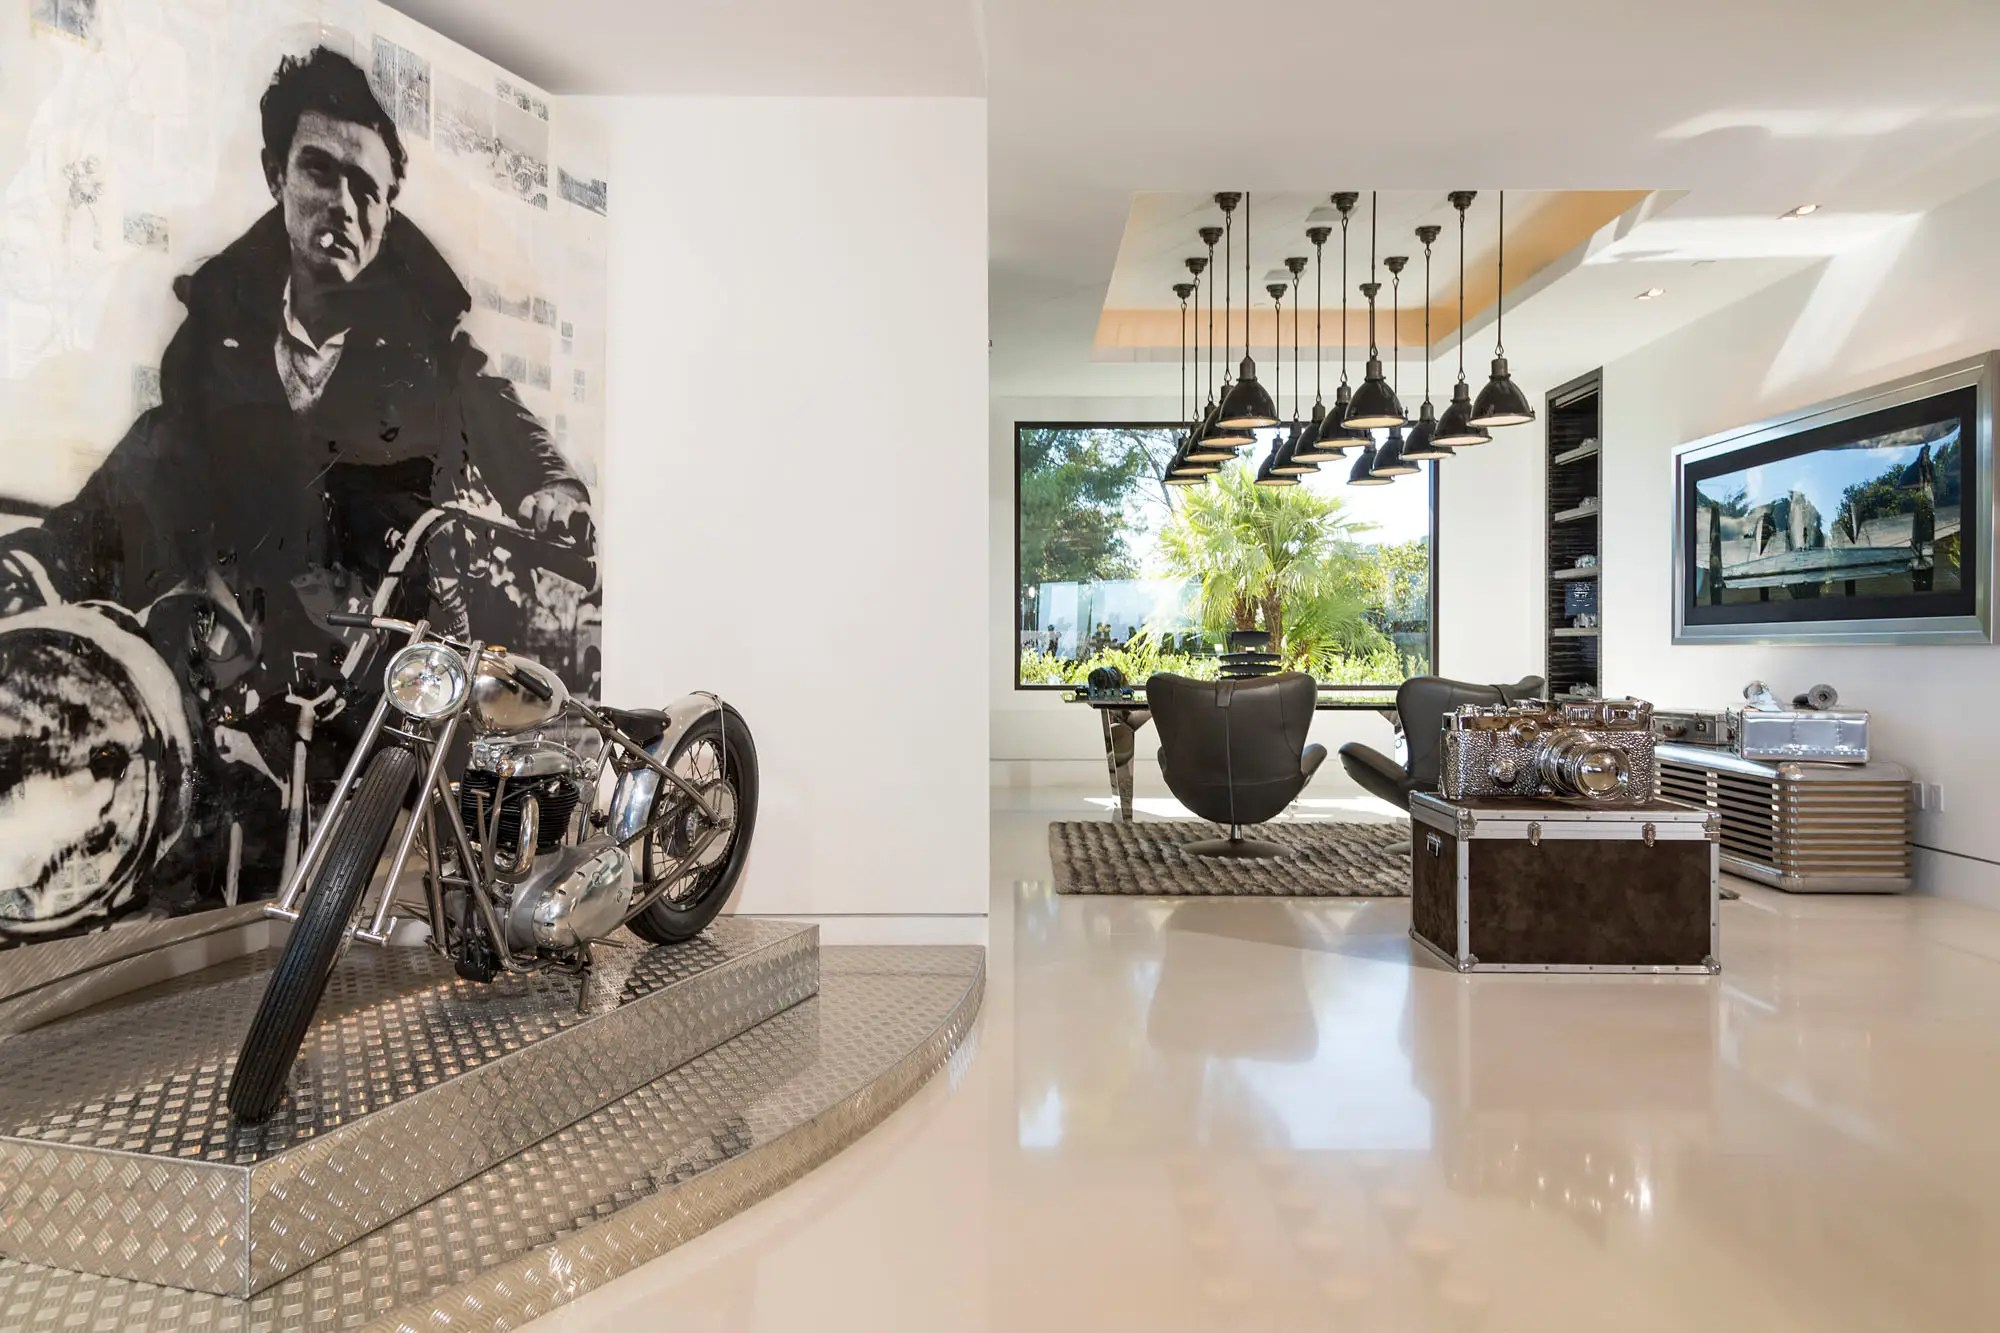 An open office is off to the side, with a motorcycle on display.